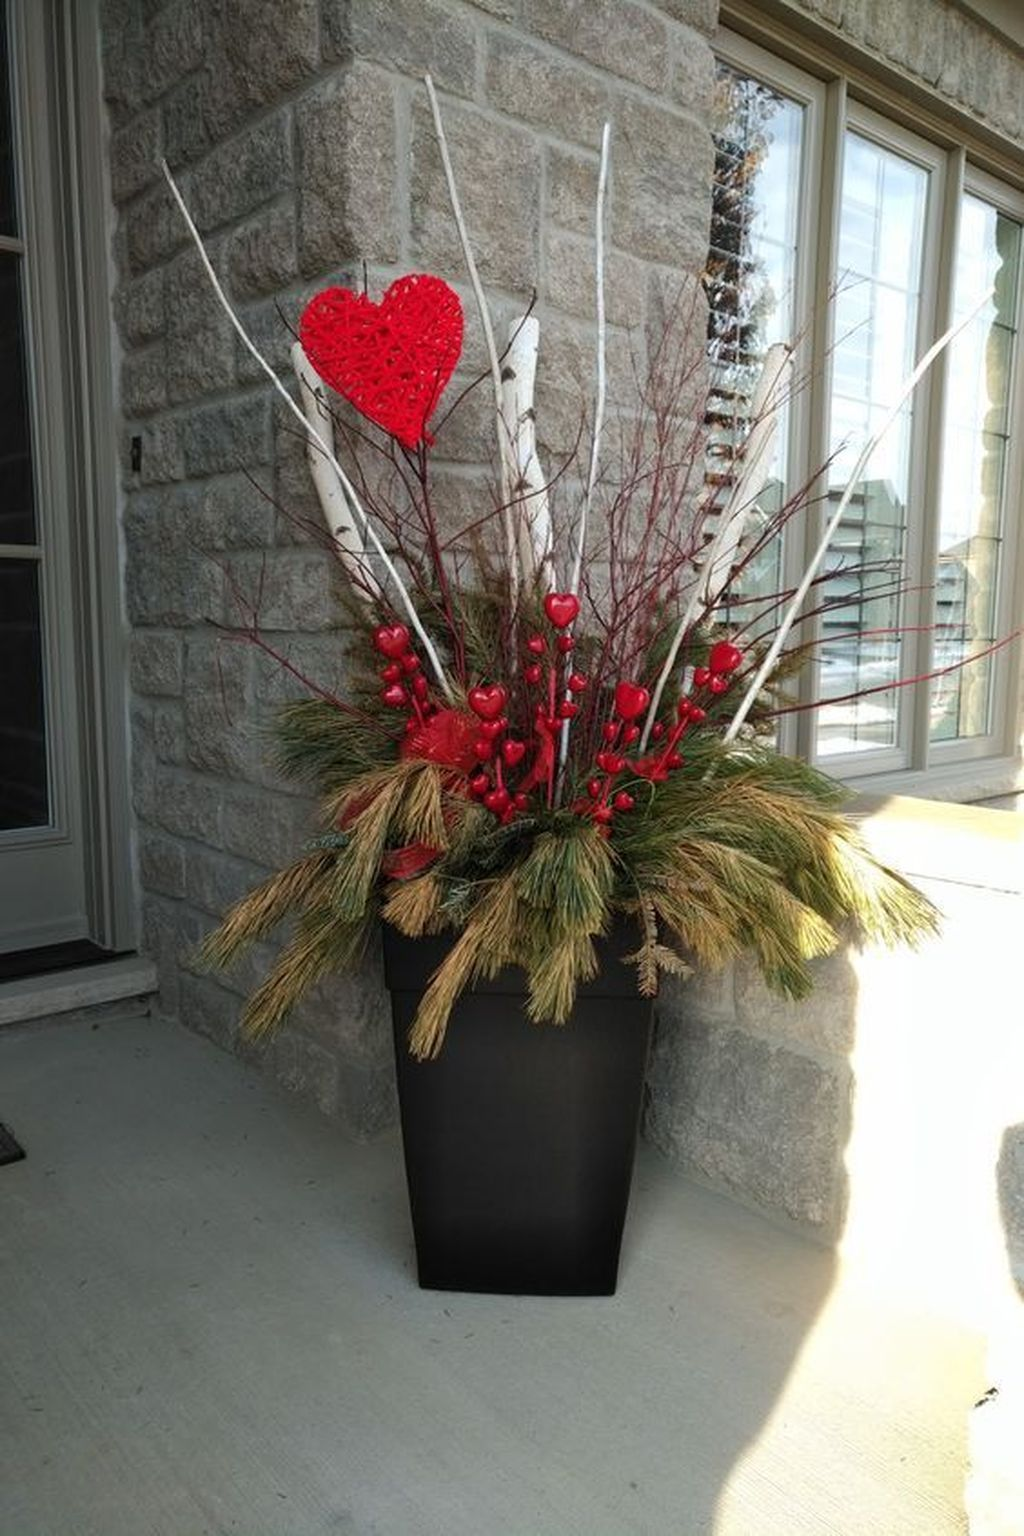 Pin By Becky Haley On Valentines In 2020 Valentines Outdoor Decorations Diy Valentines Decorations Valentine Decorations